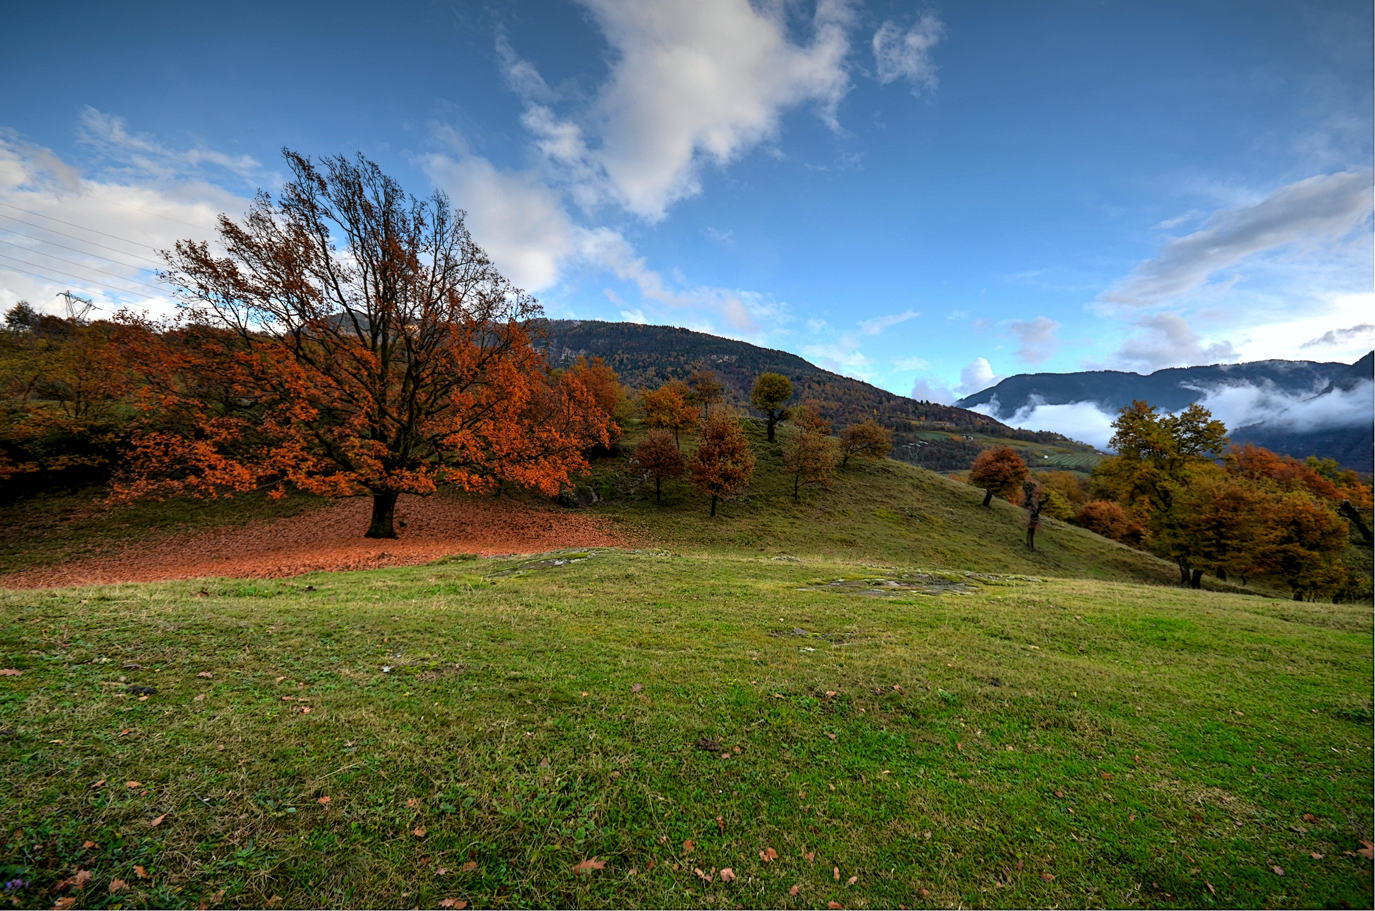 Autumn and its colors...